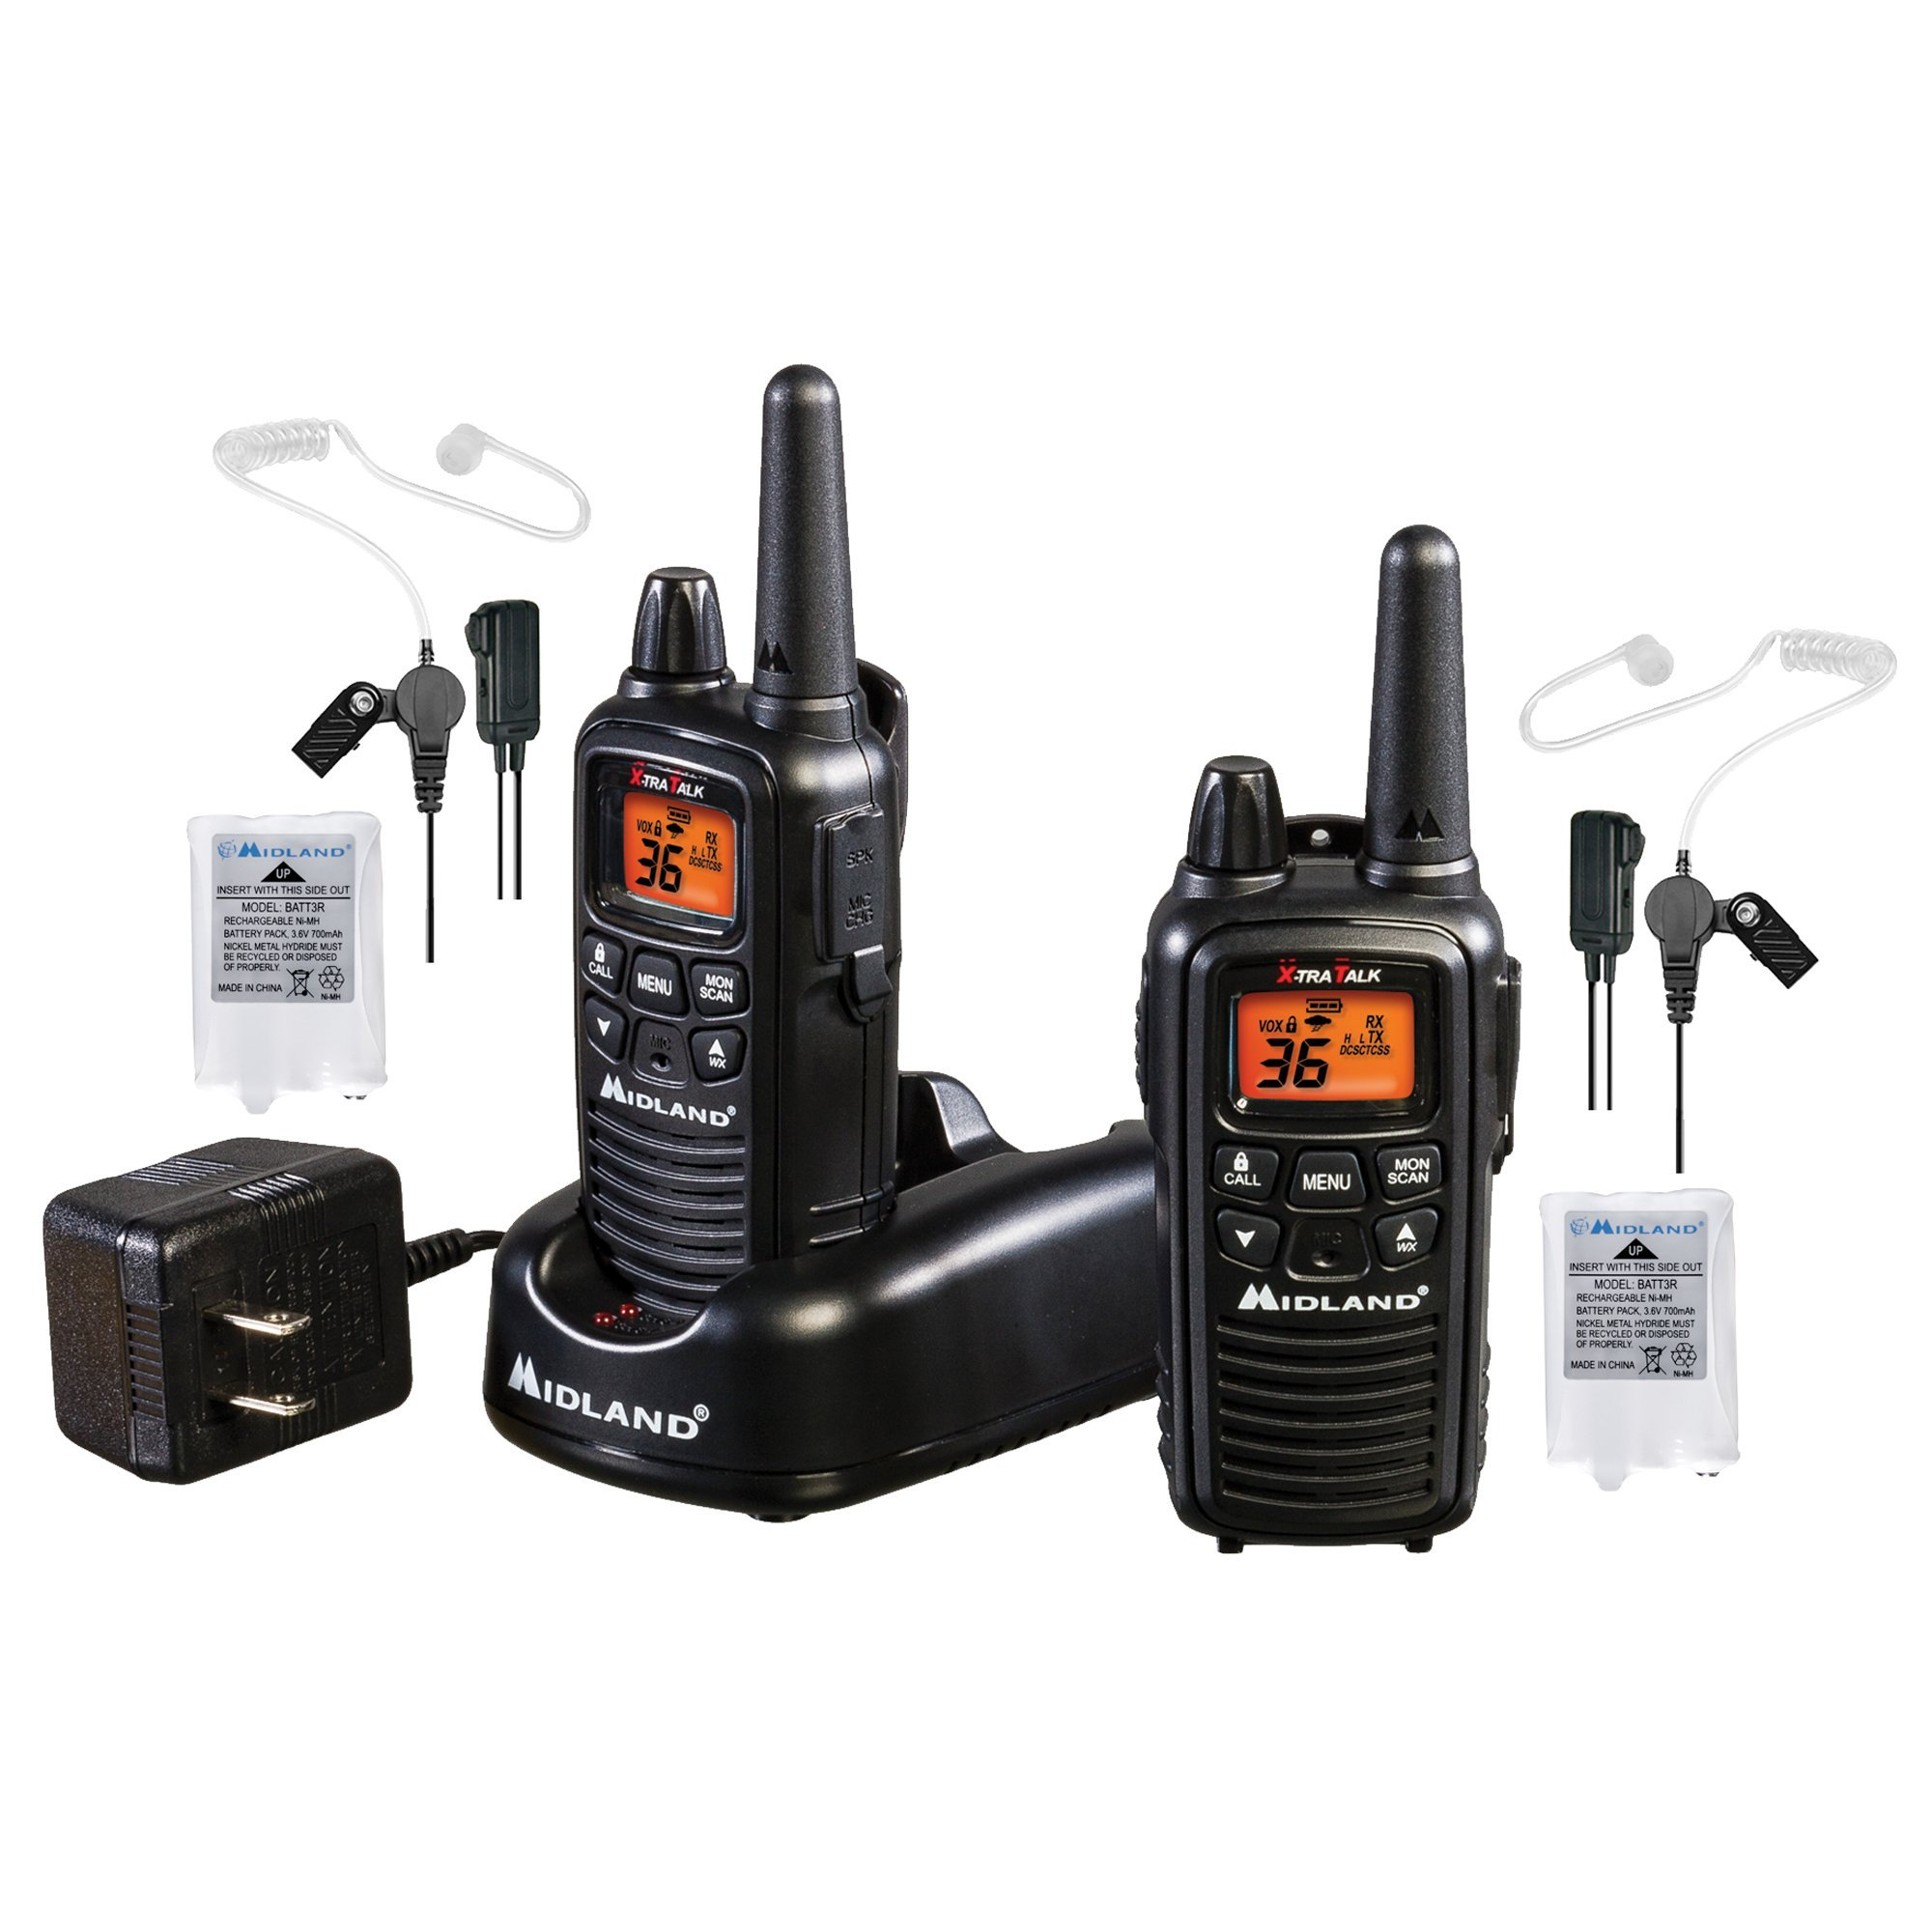 Midland - Business Radio Bundle - LXT600, 36 Channel FRS Two-Way Radio - Concealed Headsets, eVox for Hands-Free Operation, NOAA Weather Scan + Alert (Pair Pack) (Black)